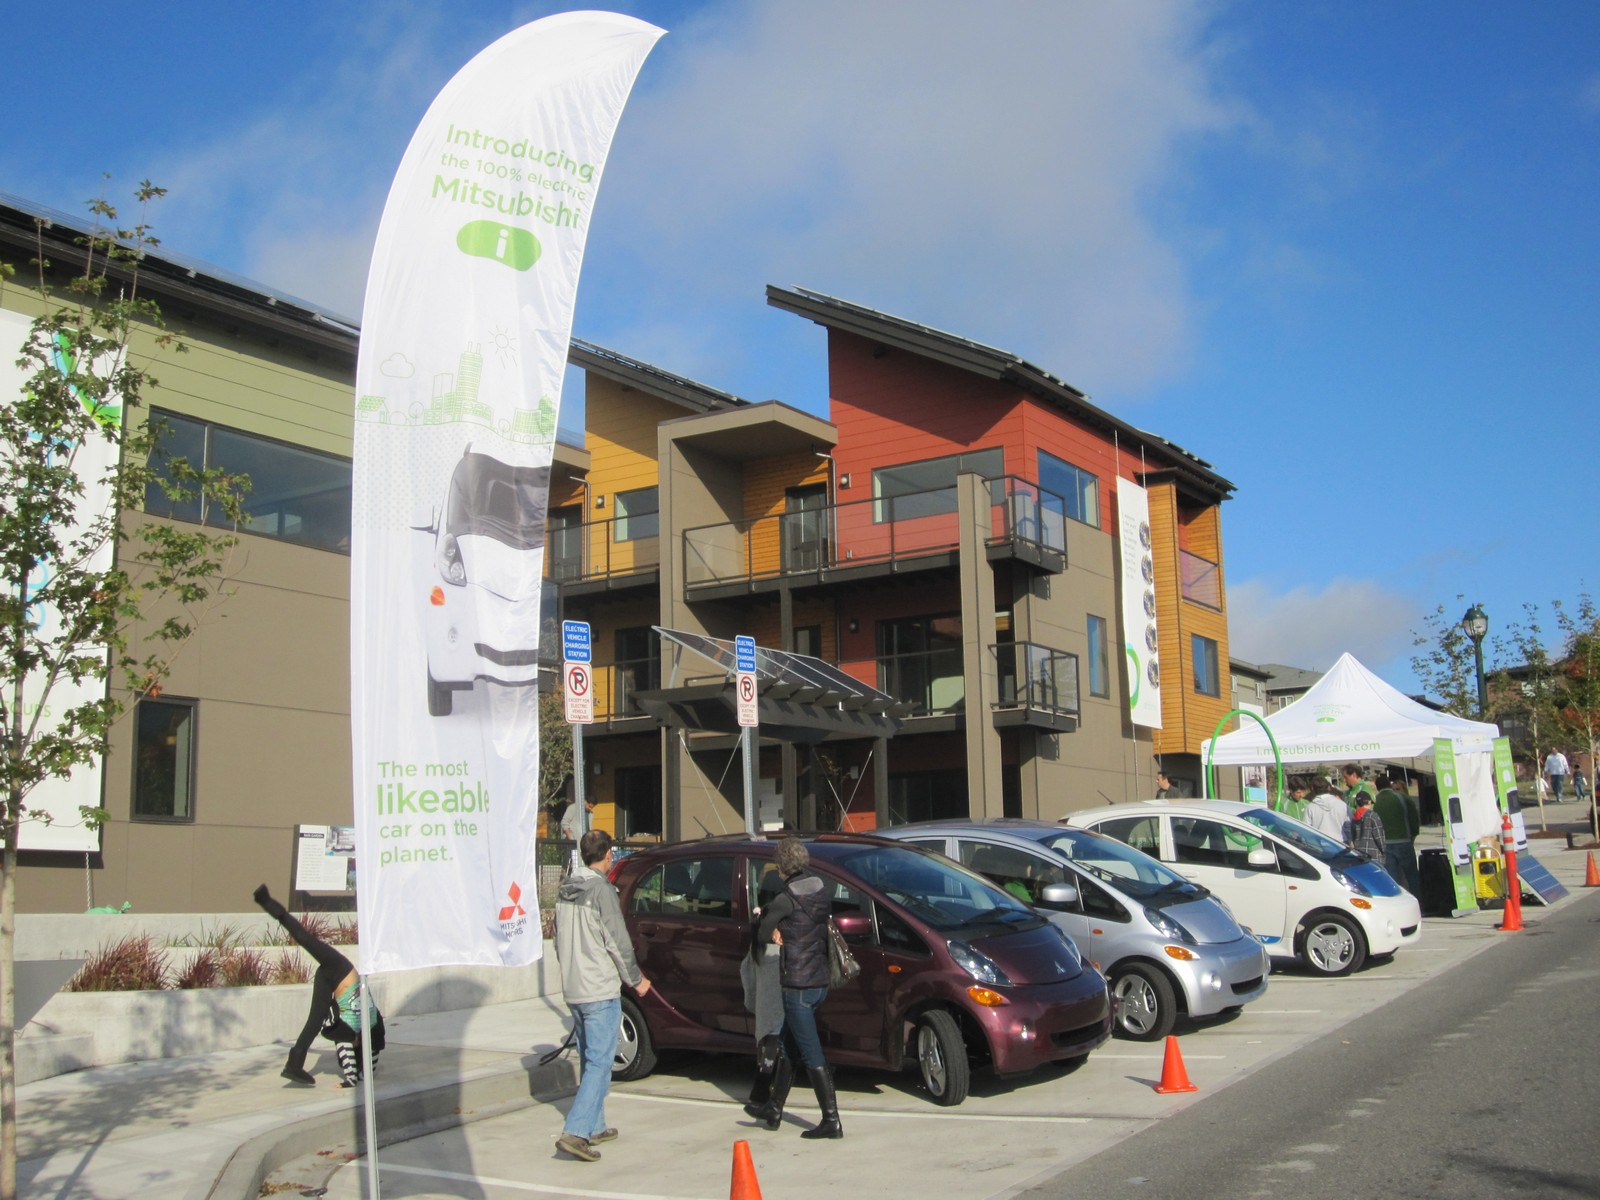 We partnered with Mitsubishi to do a test drive event for their new i electric vehicle. The lowest carbon footprint townhome community in the US meets the lowest carbon footprint vehicle in the US! The i is a great urban car with a MPG equivalent of 112.